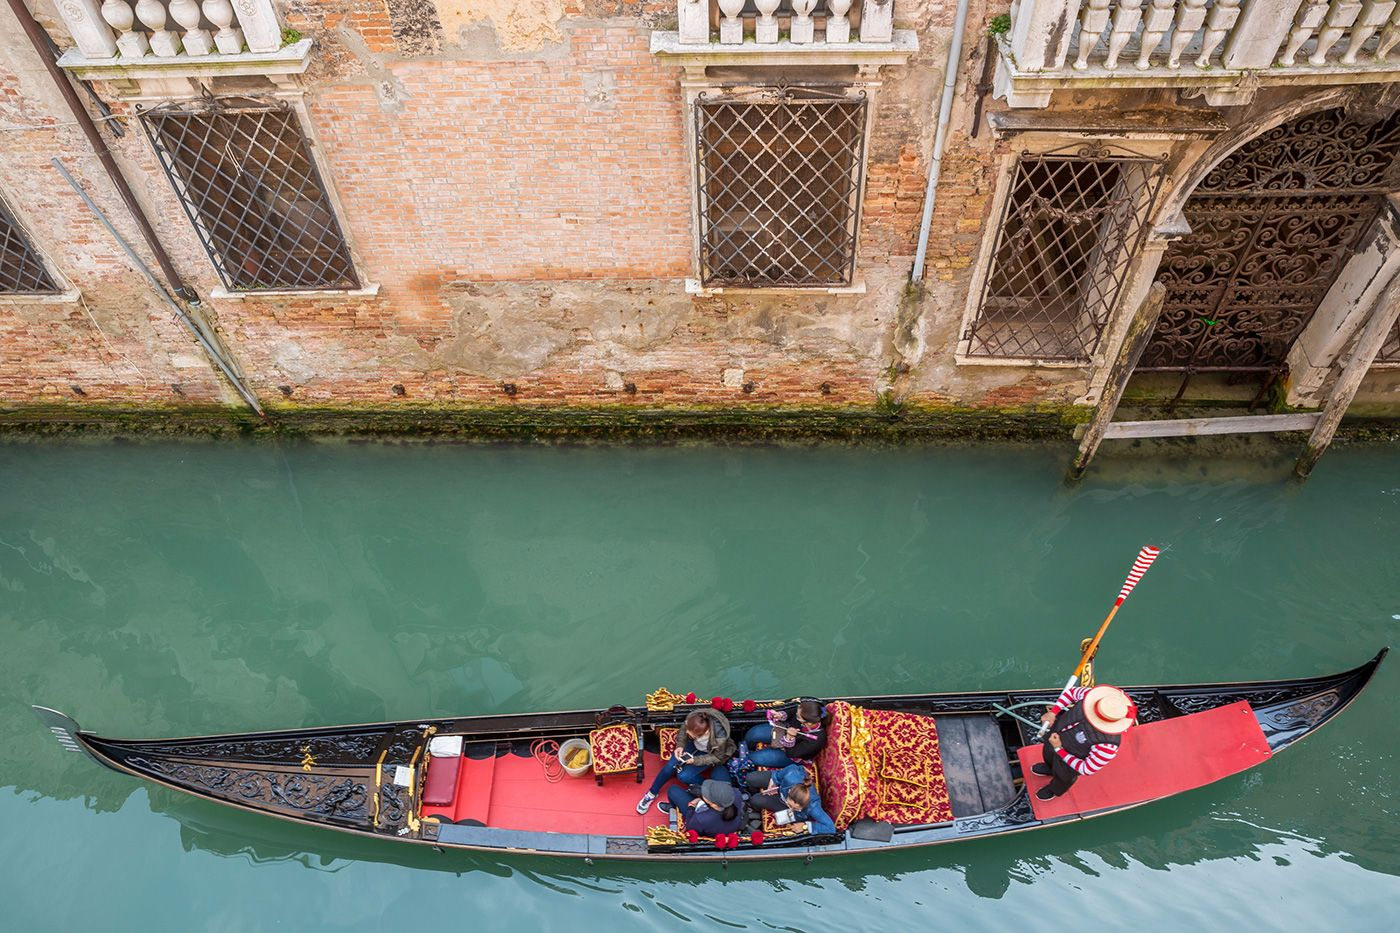 enjoy the serenades of the gondoliers rowing along the canal